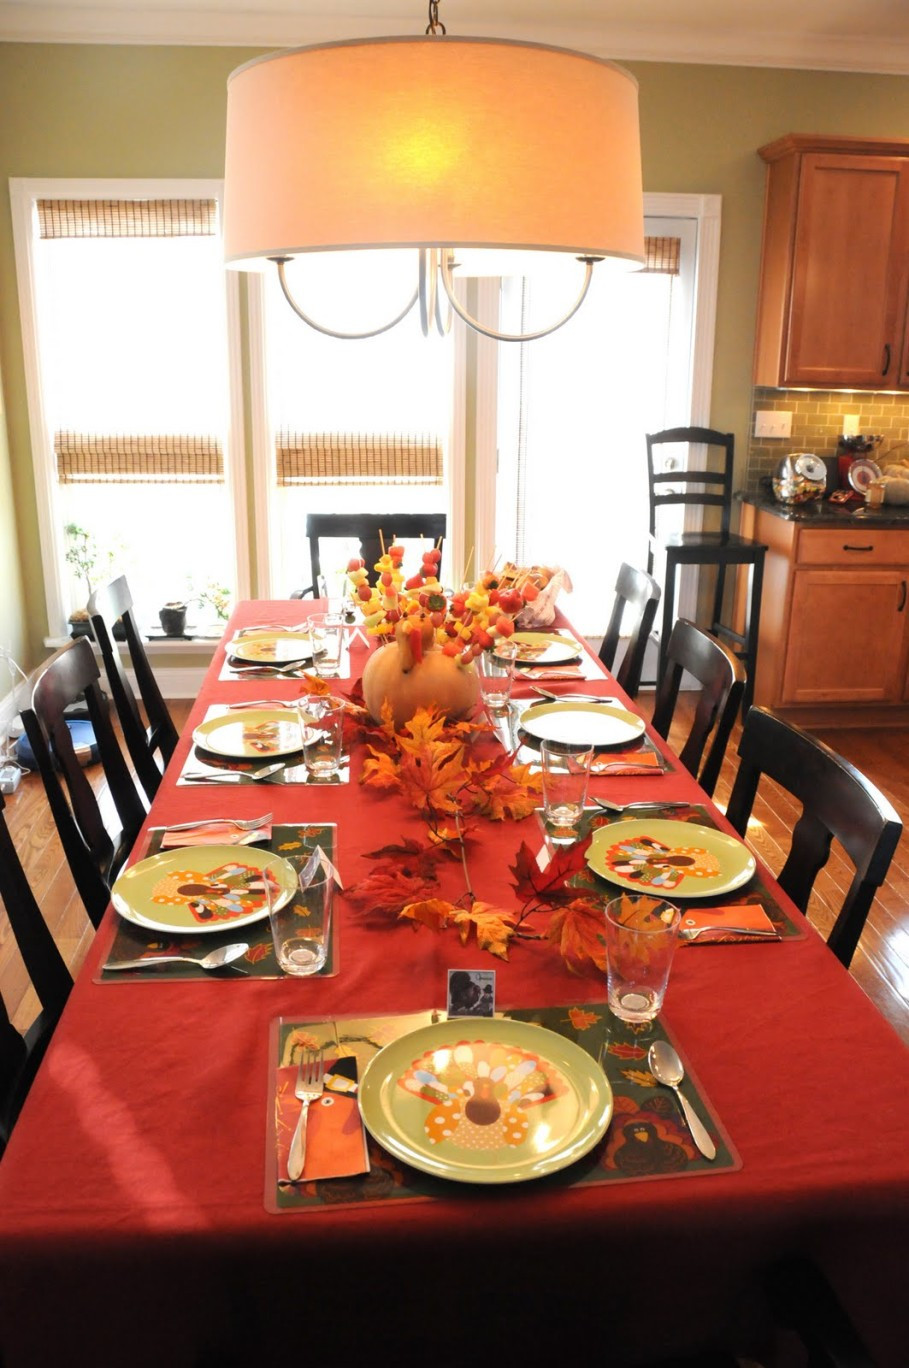 Dinner Table Deco  decoration Attractive DIY Table Decorations Improving